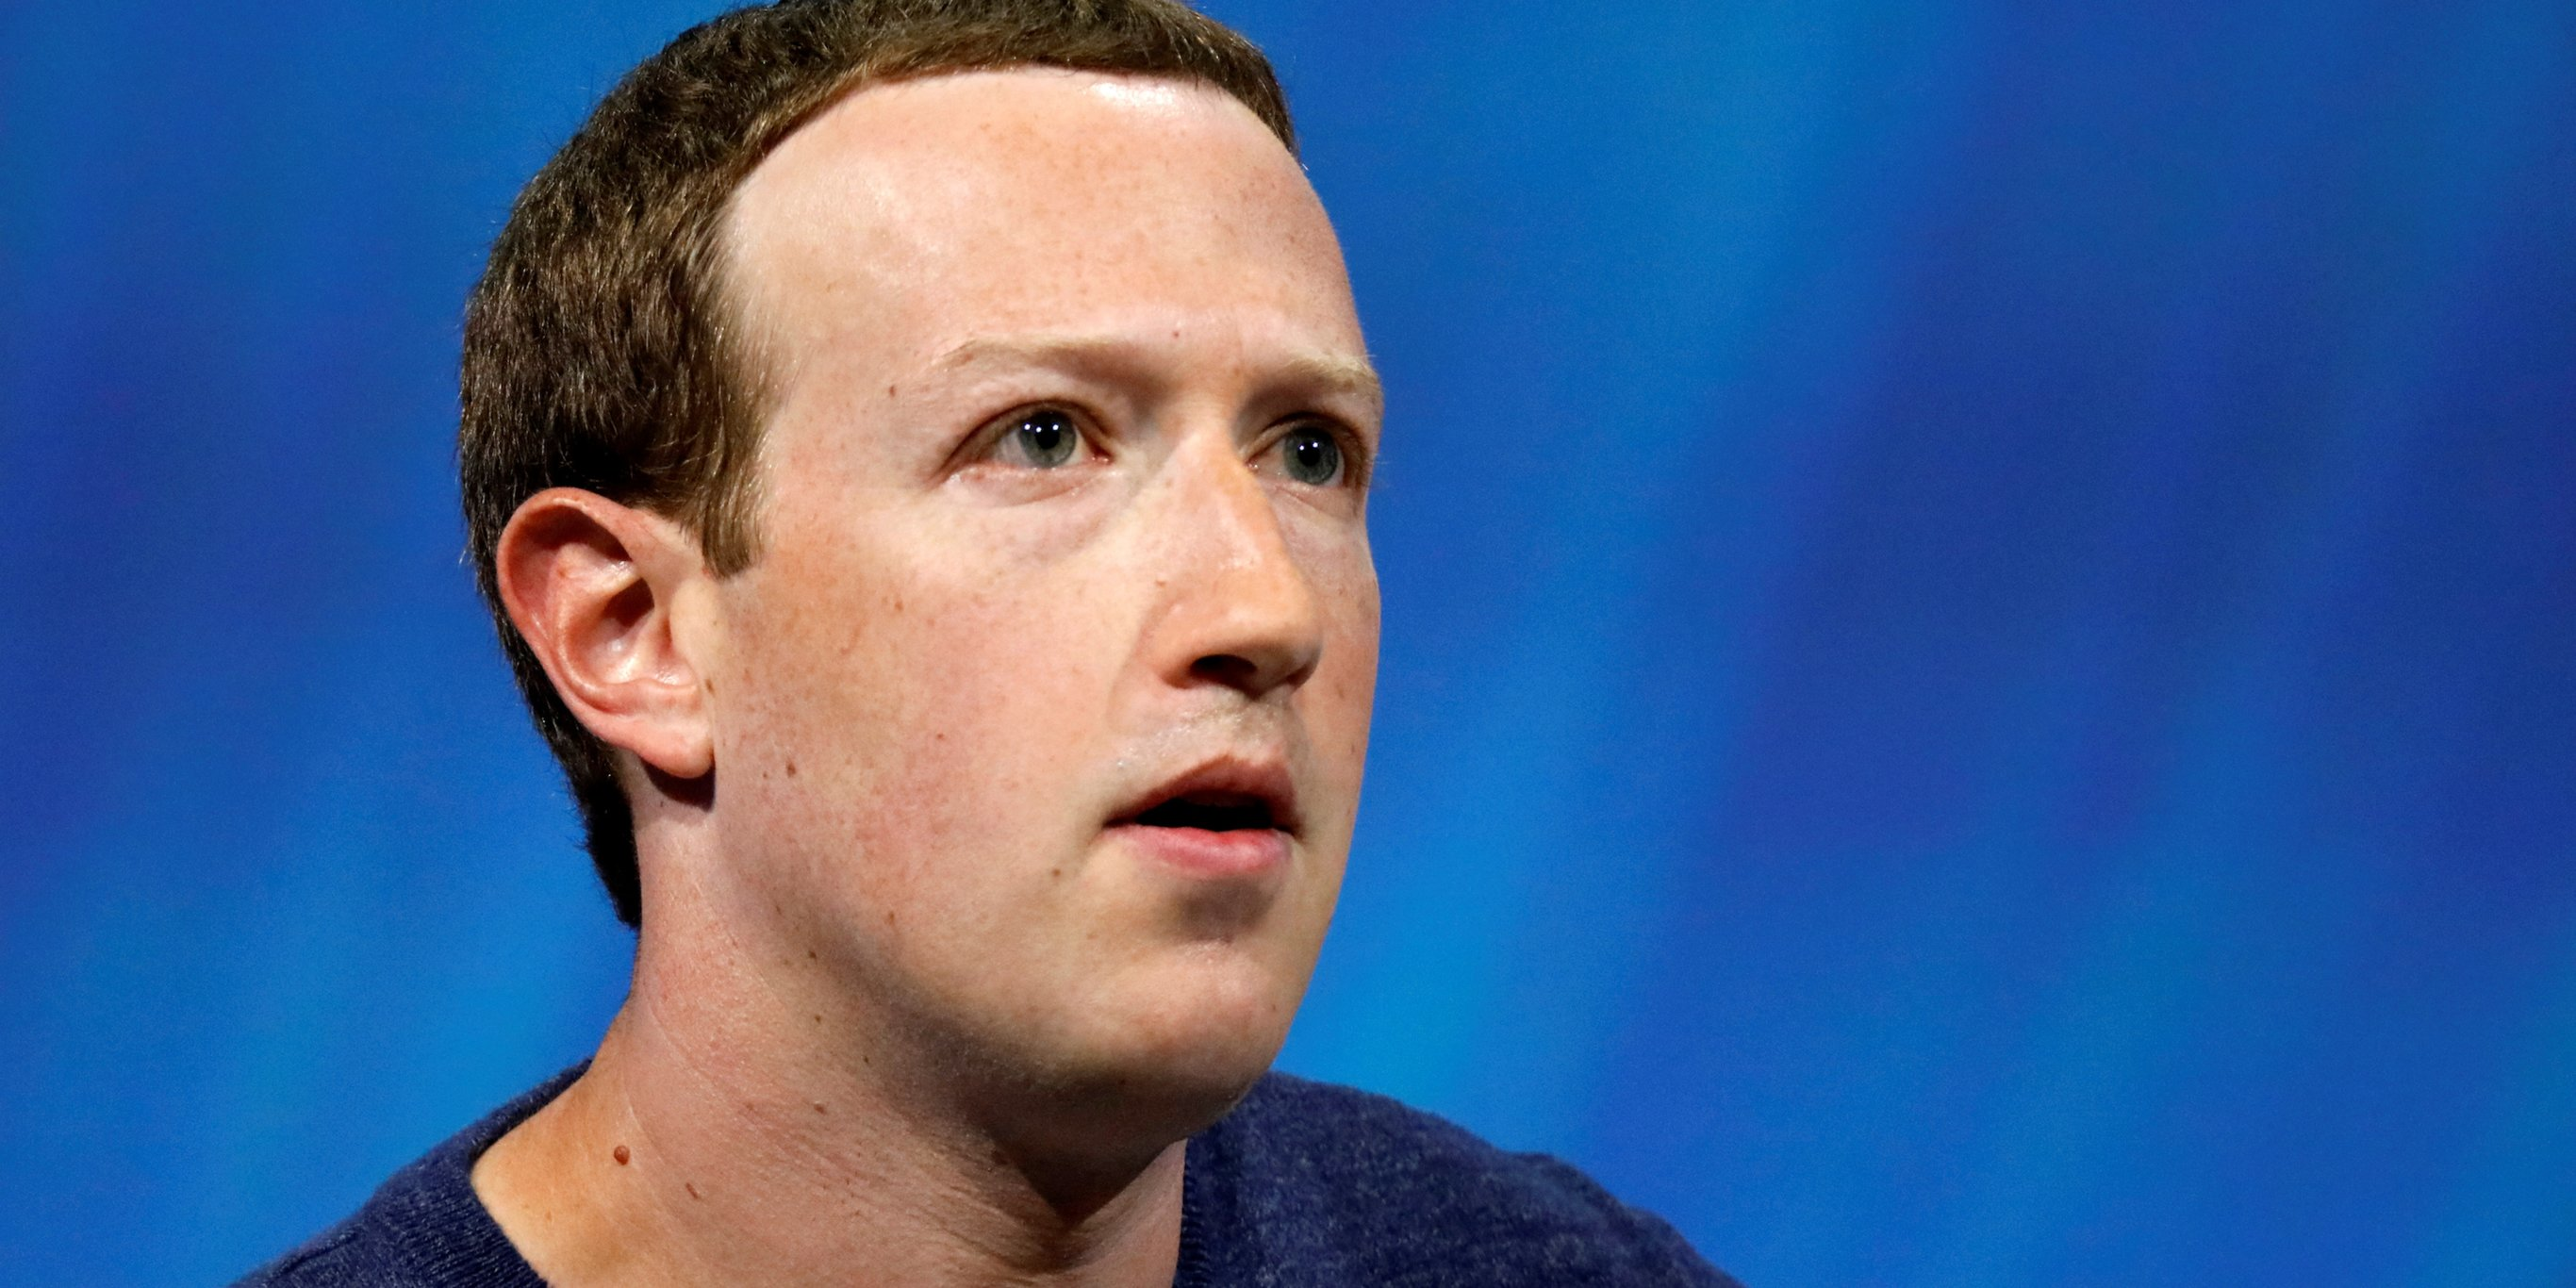 Facebook's ad platform has crashed — causing chaos just days before Black Friday